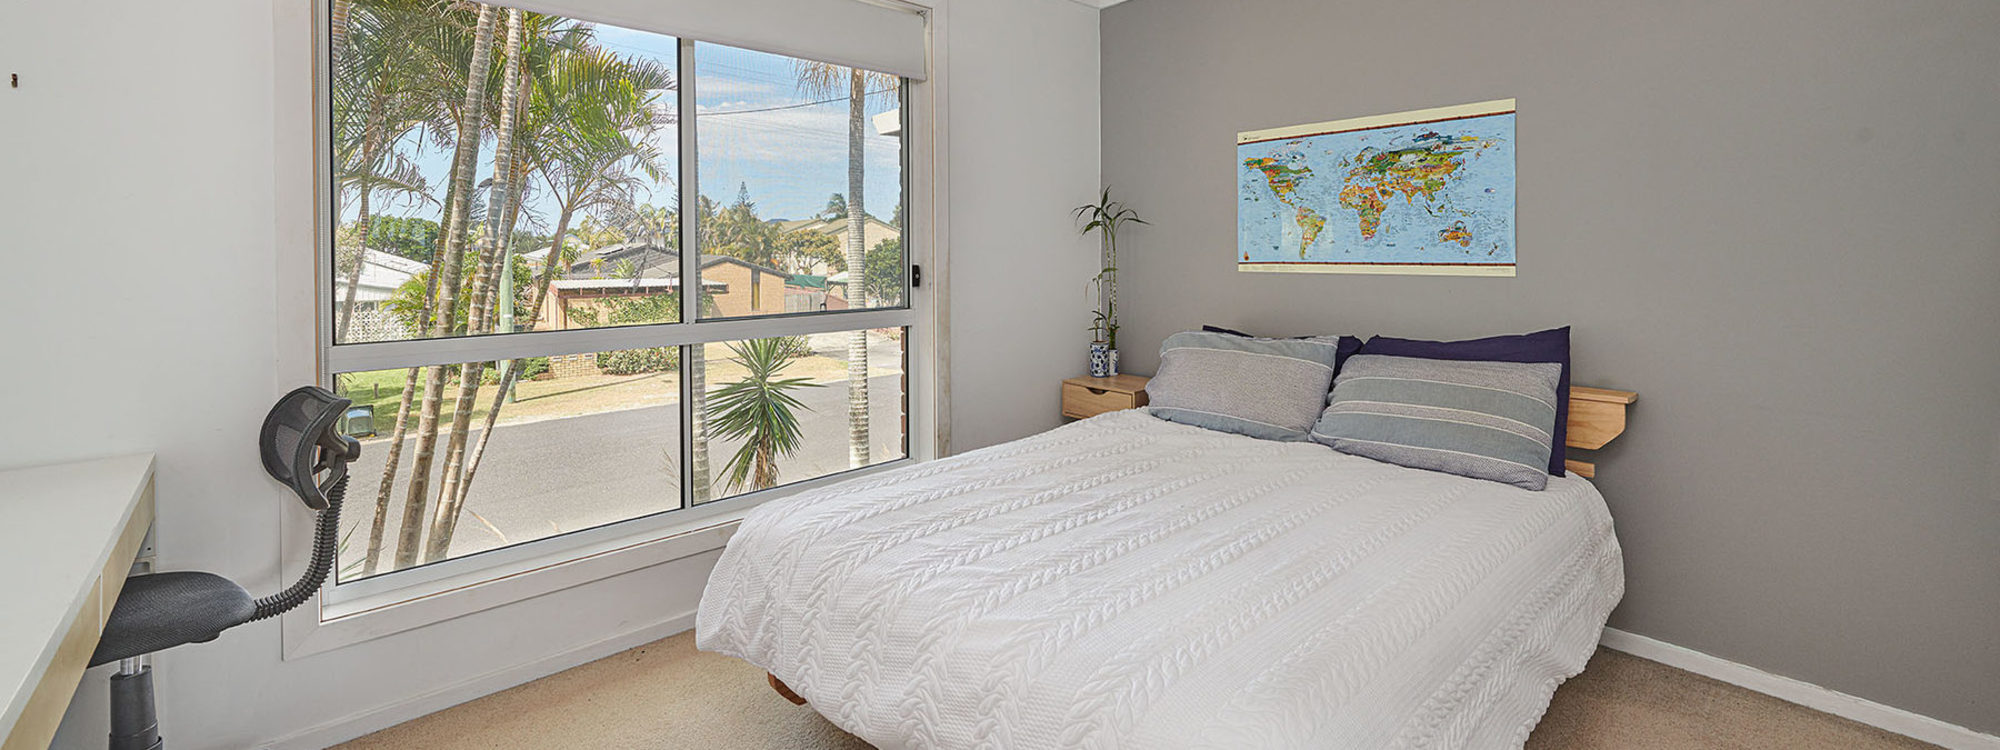 Sea Breeze - Lennox Head - Bedroom 2